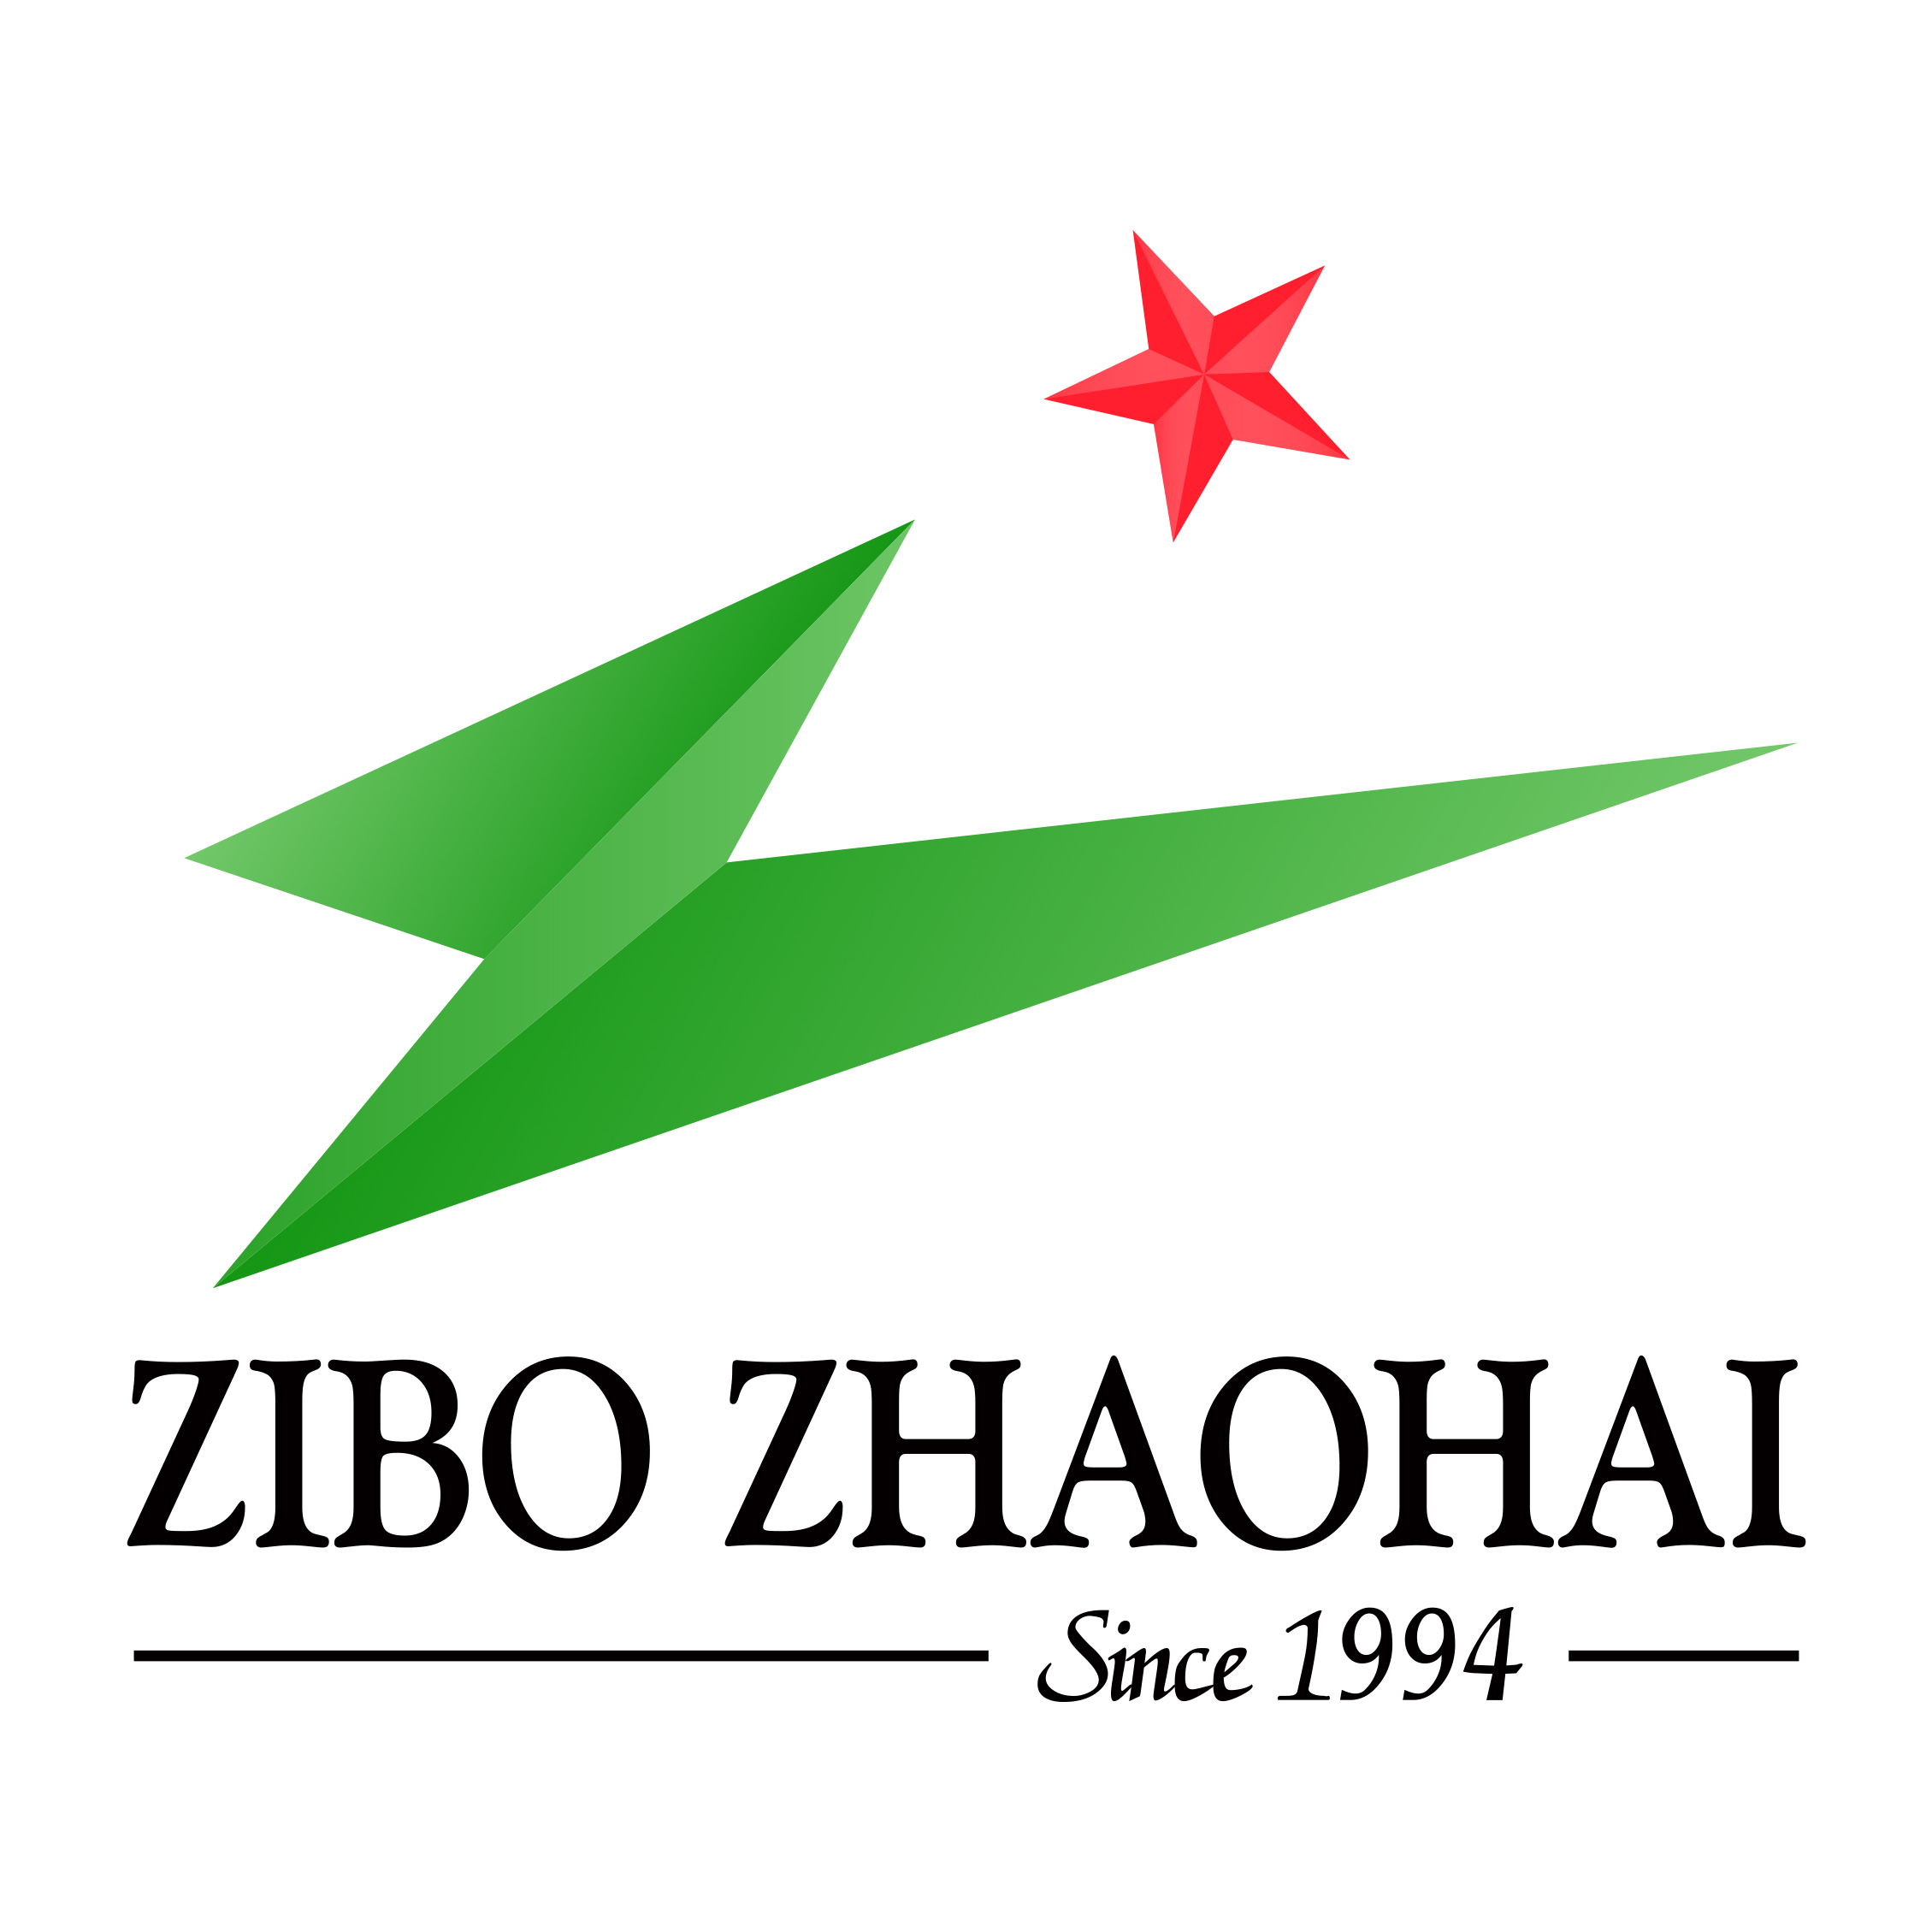 ZIBO ZHAOHAI LIGHT INDUSTRIAL PRODUCTS CO., LTD.